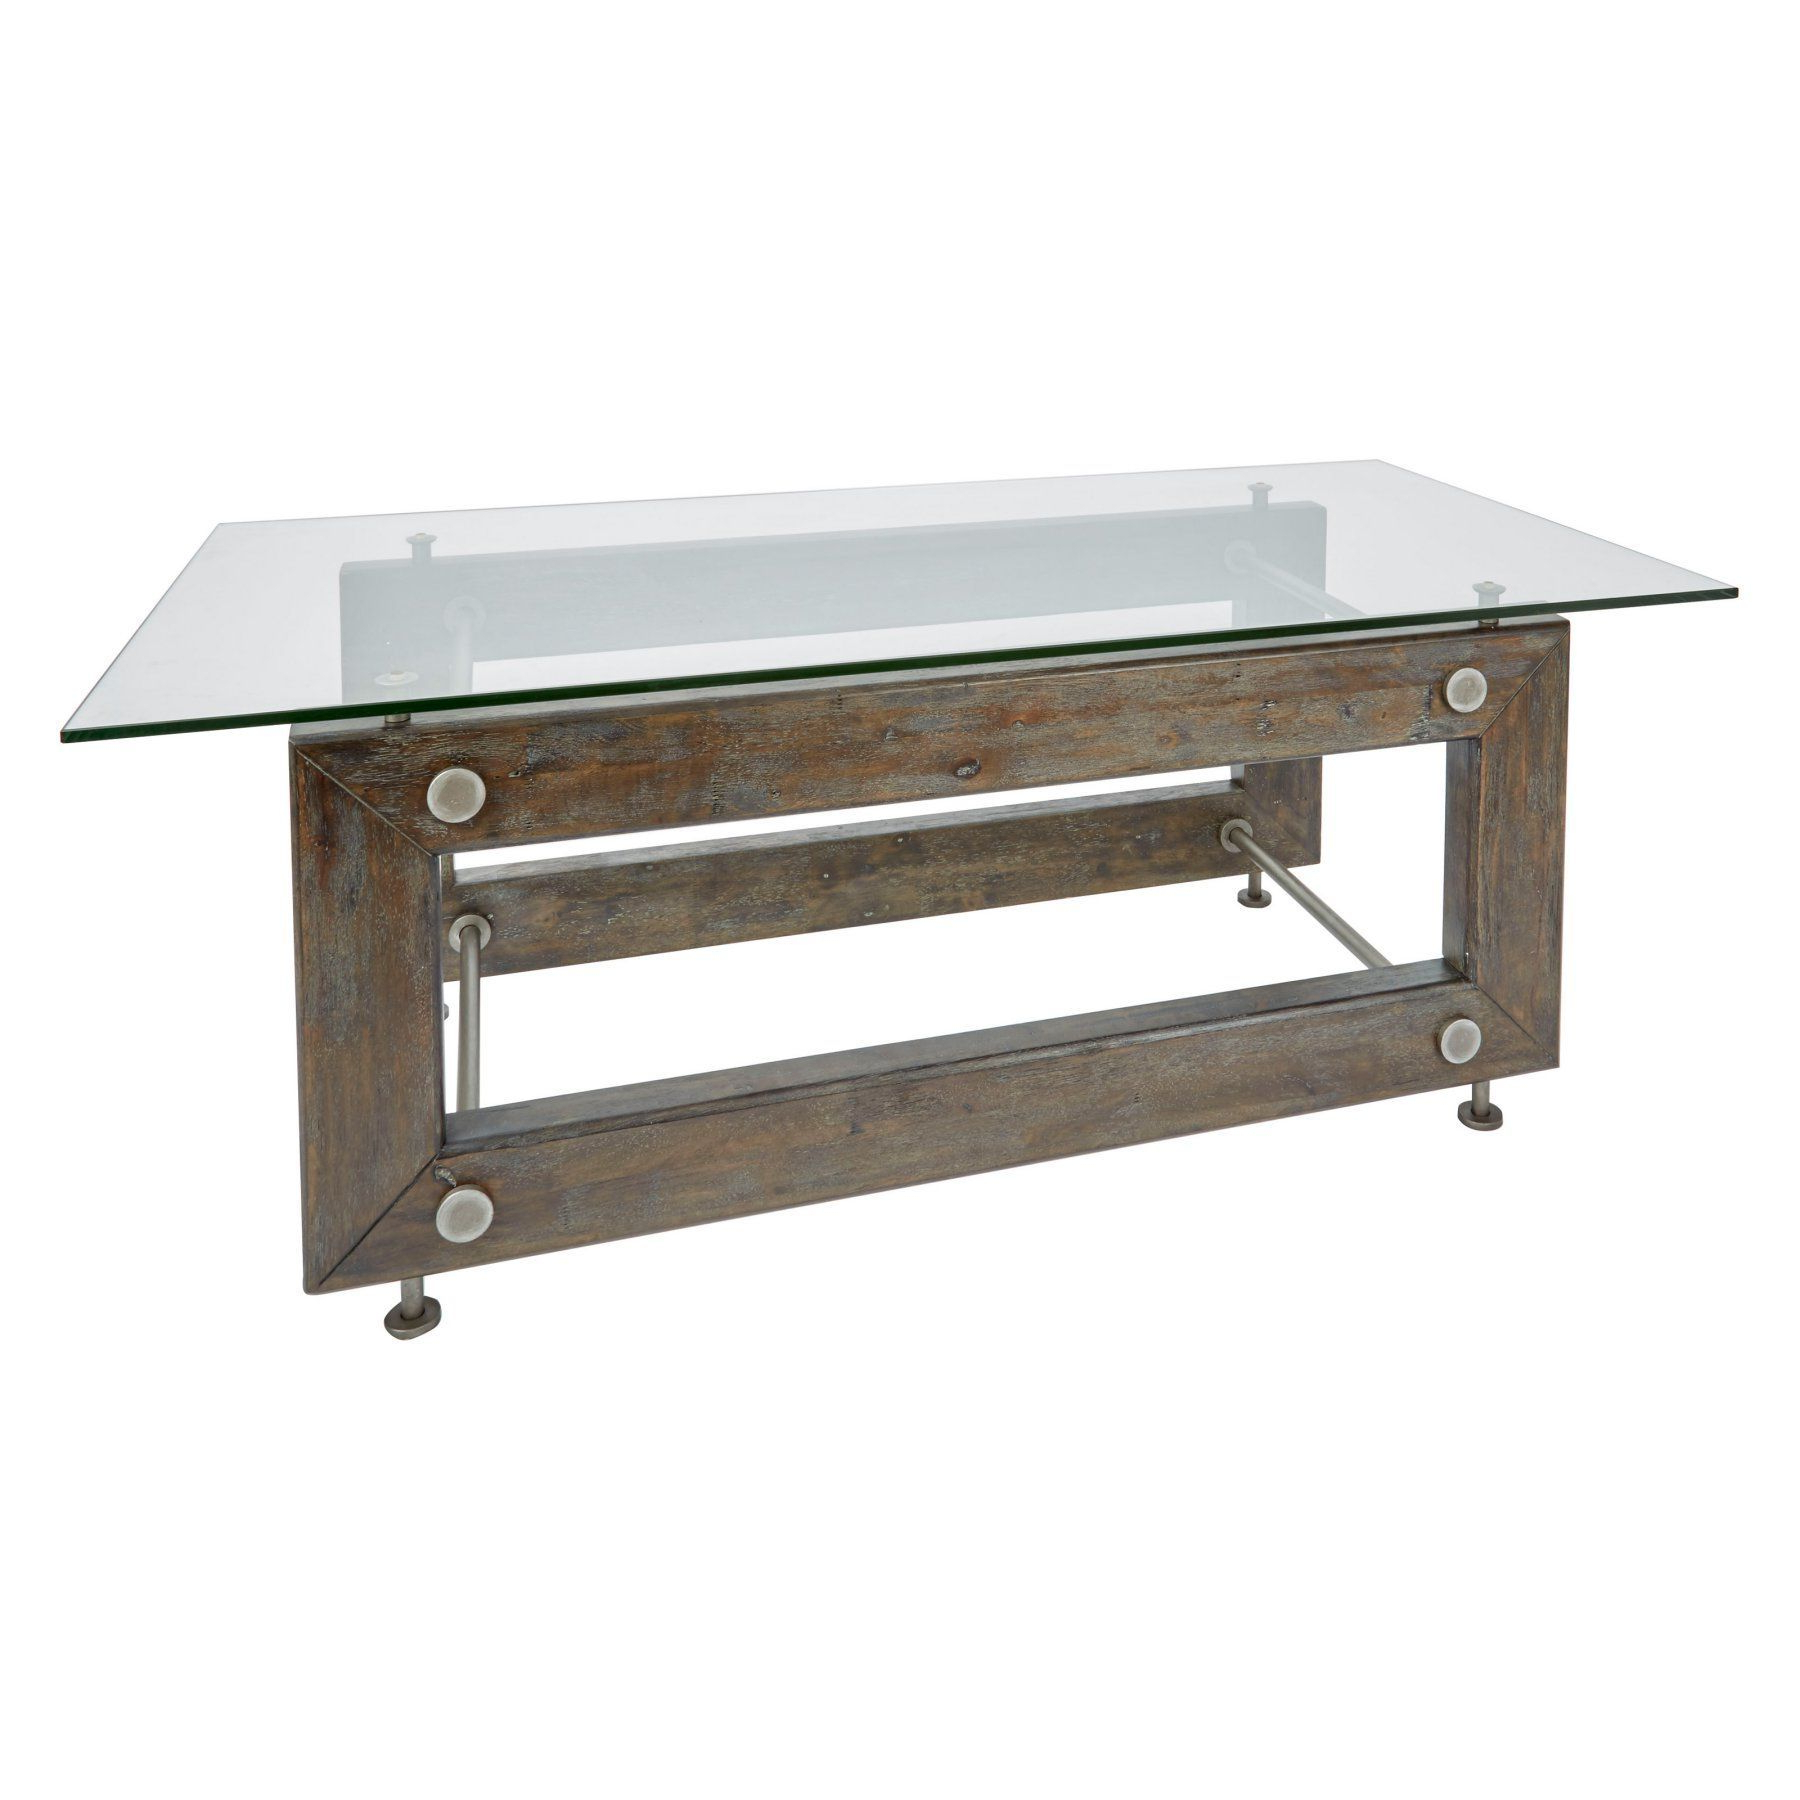 Silverwood Knox Industrial Collection Coffee Table – Ft1158 In Most Recent Carbon Loft Peter Matte Black Slatted Coffee Tables (View 8 of 20)